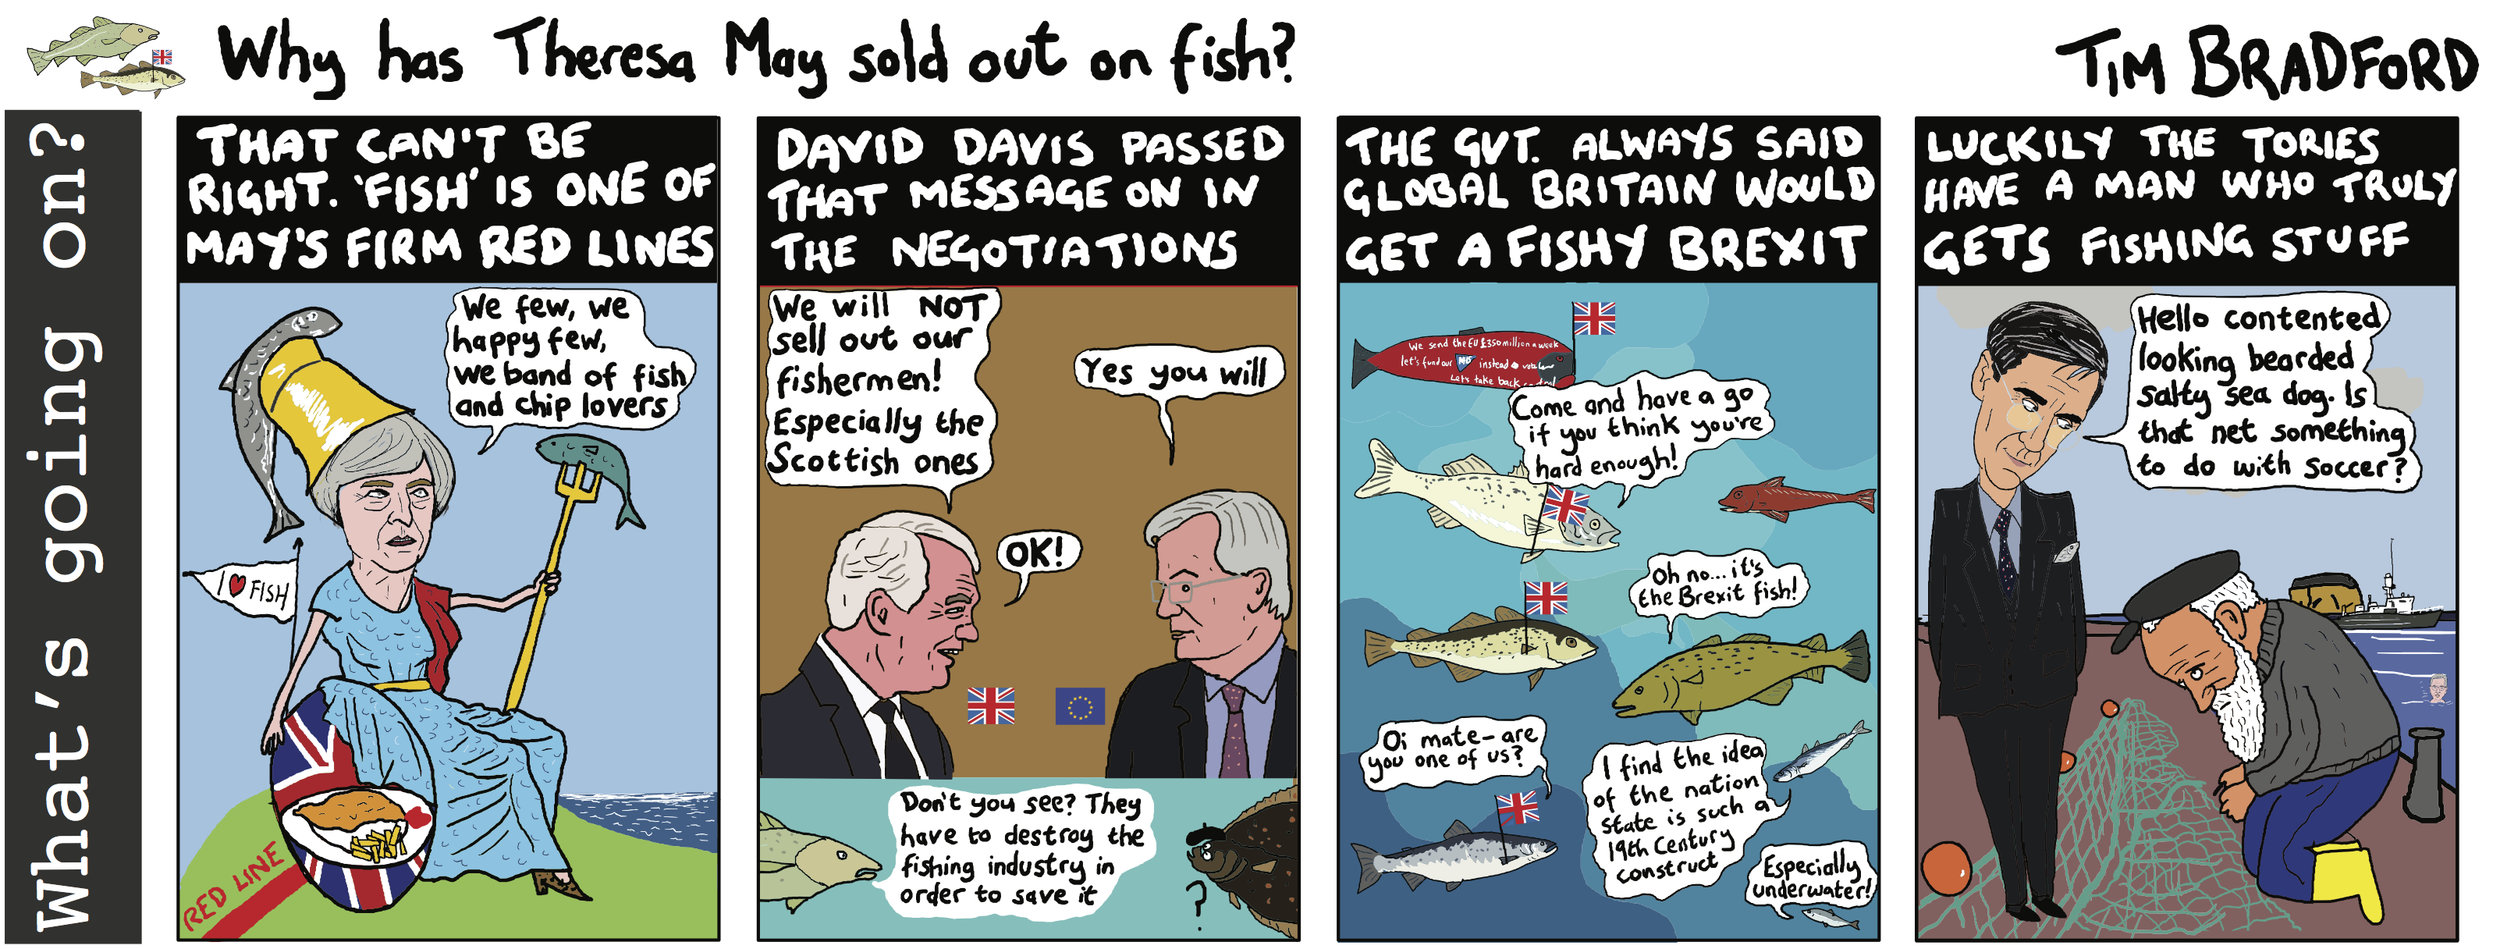 Why has Theresa May sold out on fish? - 20/03/18